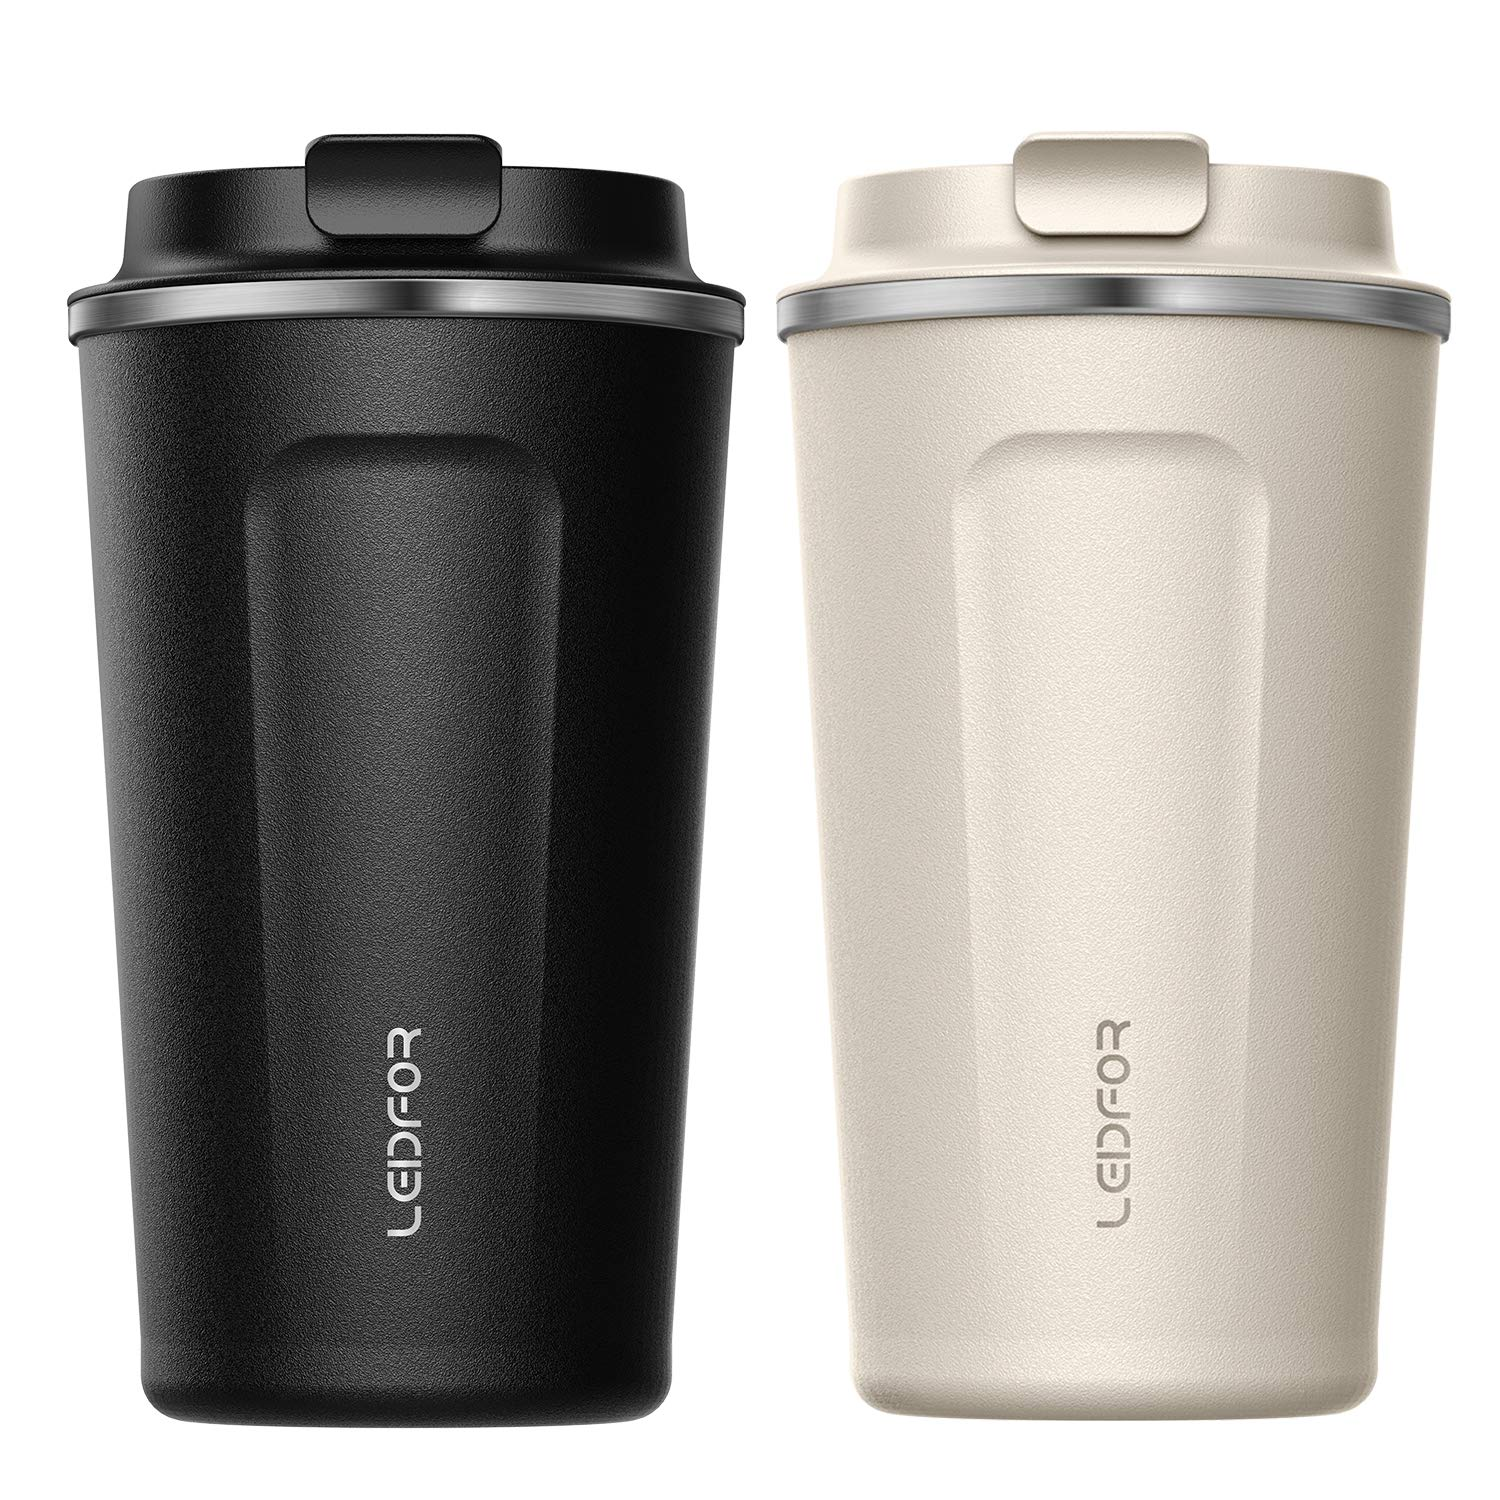 Leidfor Insulated Tumbler Coffee Travel Mug Vacuum Insulation Stainless Steel with Lid Leakproof BPA-Free 17oz Black Cream White TWO PACK by LEIDFOR